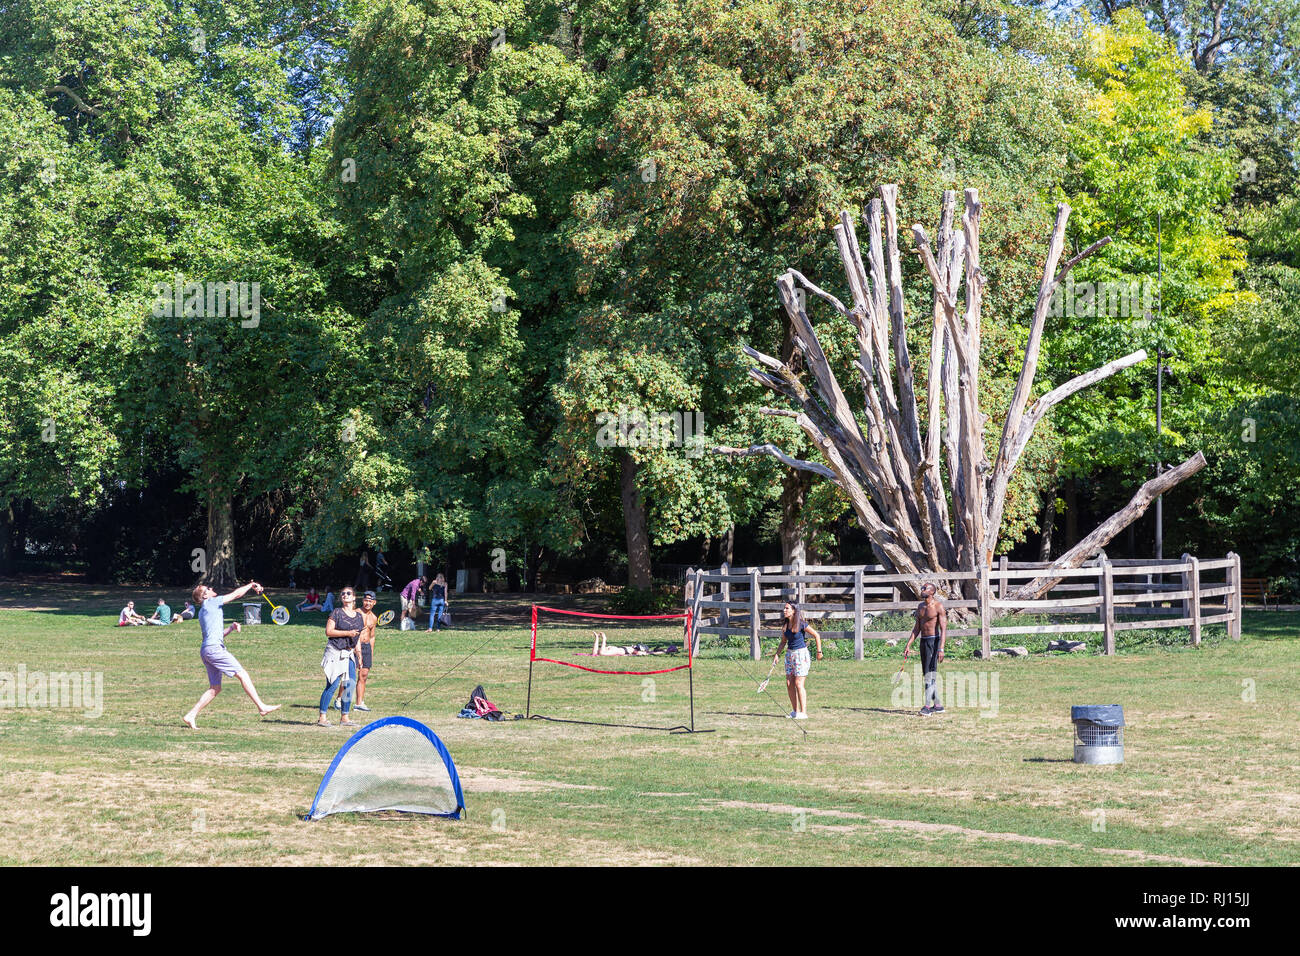 Parc municipal in Luxembourg city with recreating people playing badminton - Stock Image